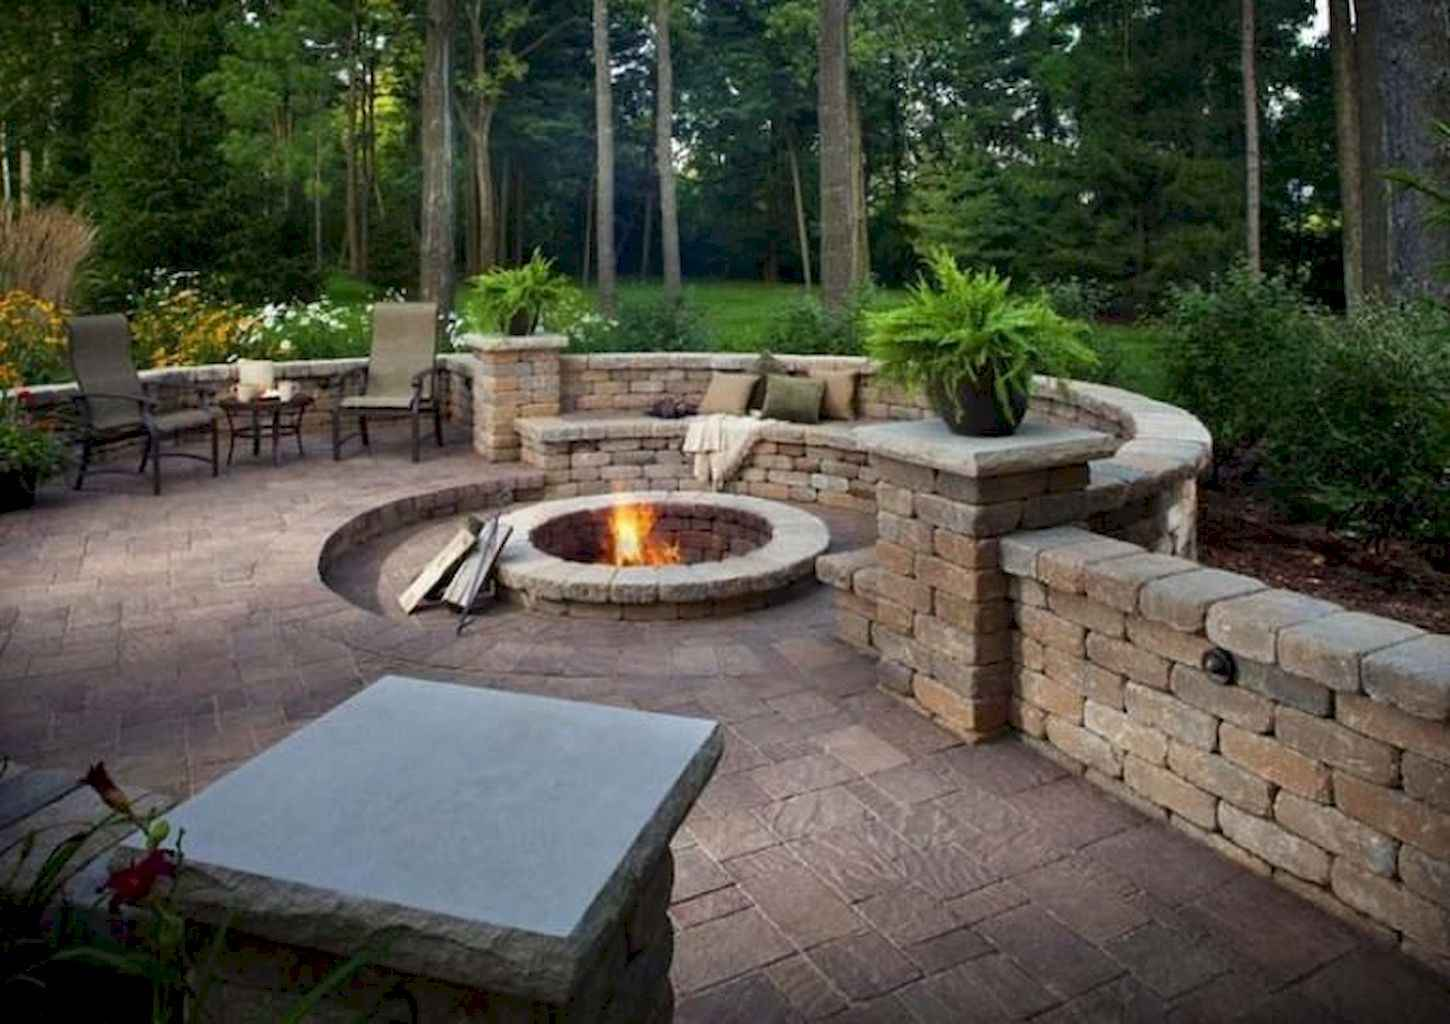 48 Awesome Backyard Fire Pits with Seating Ideas